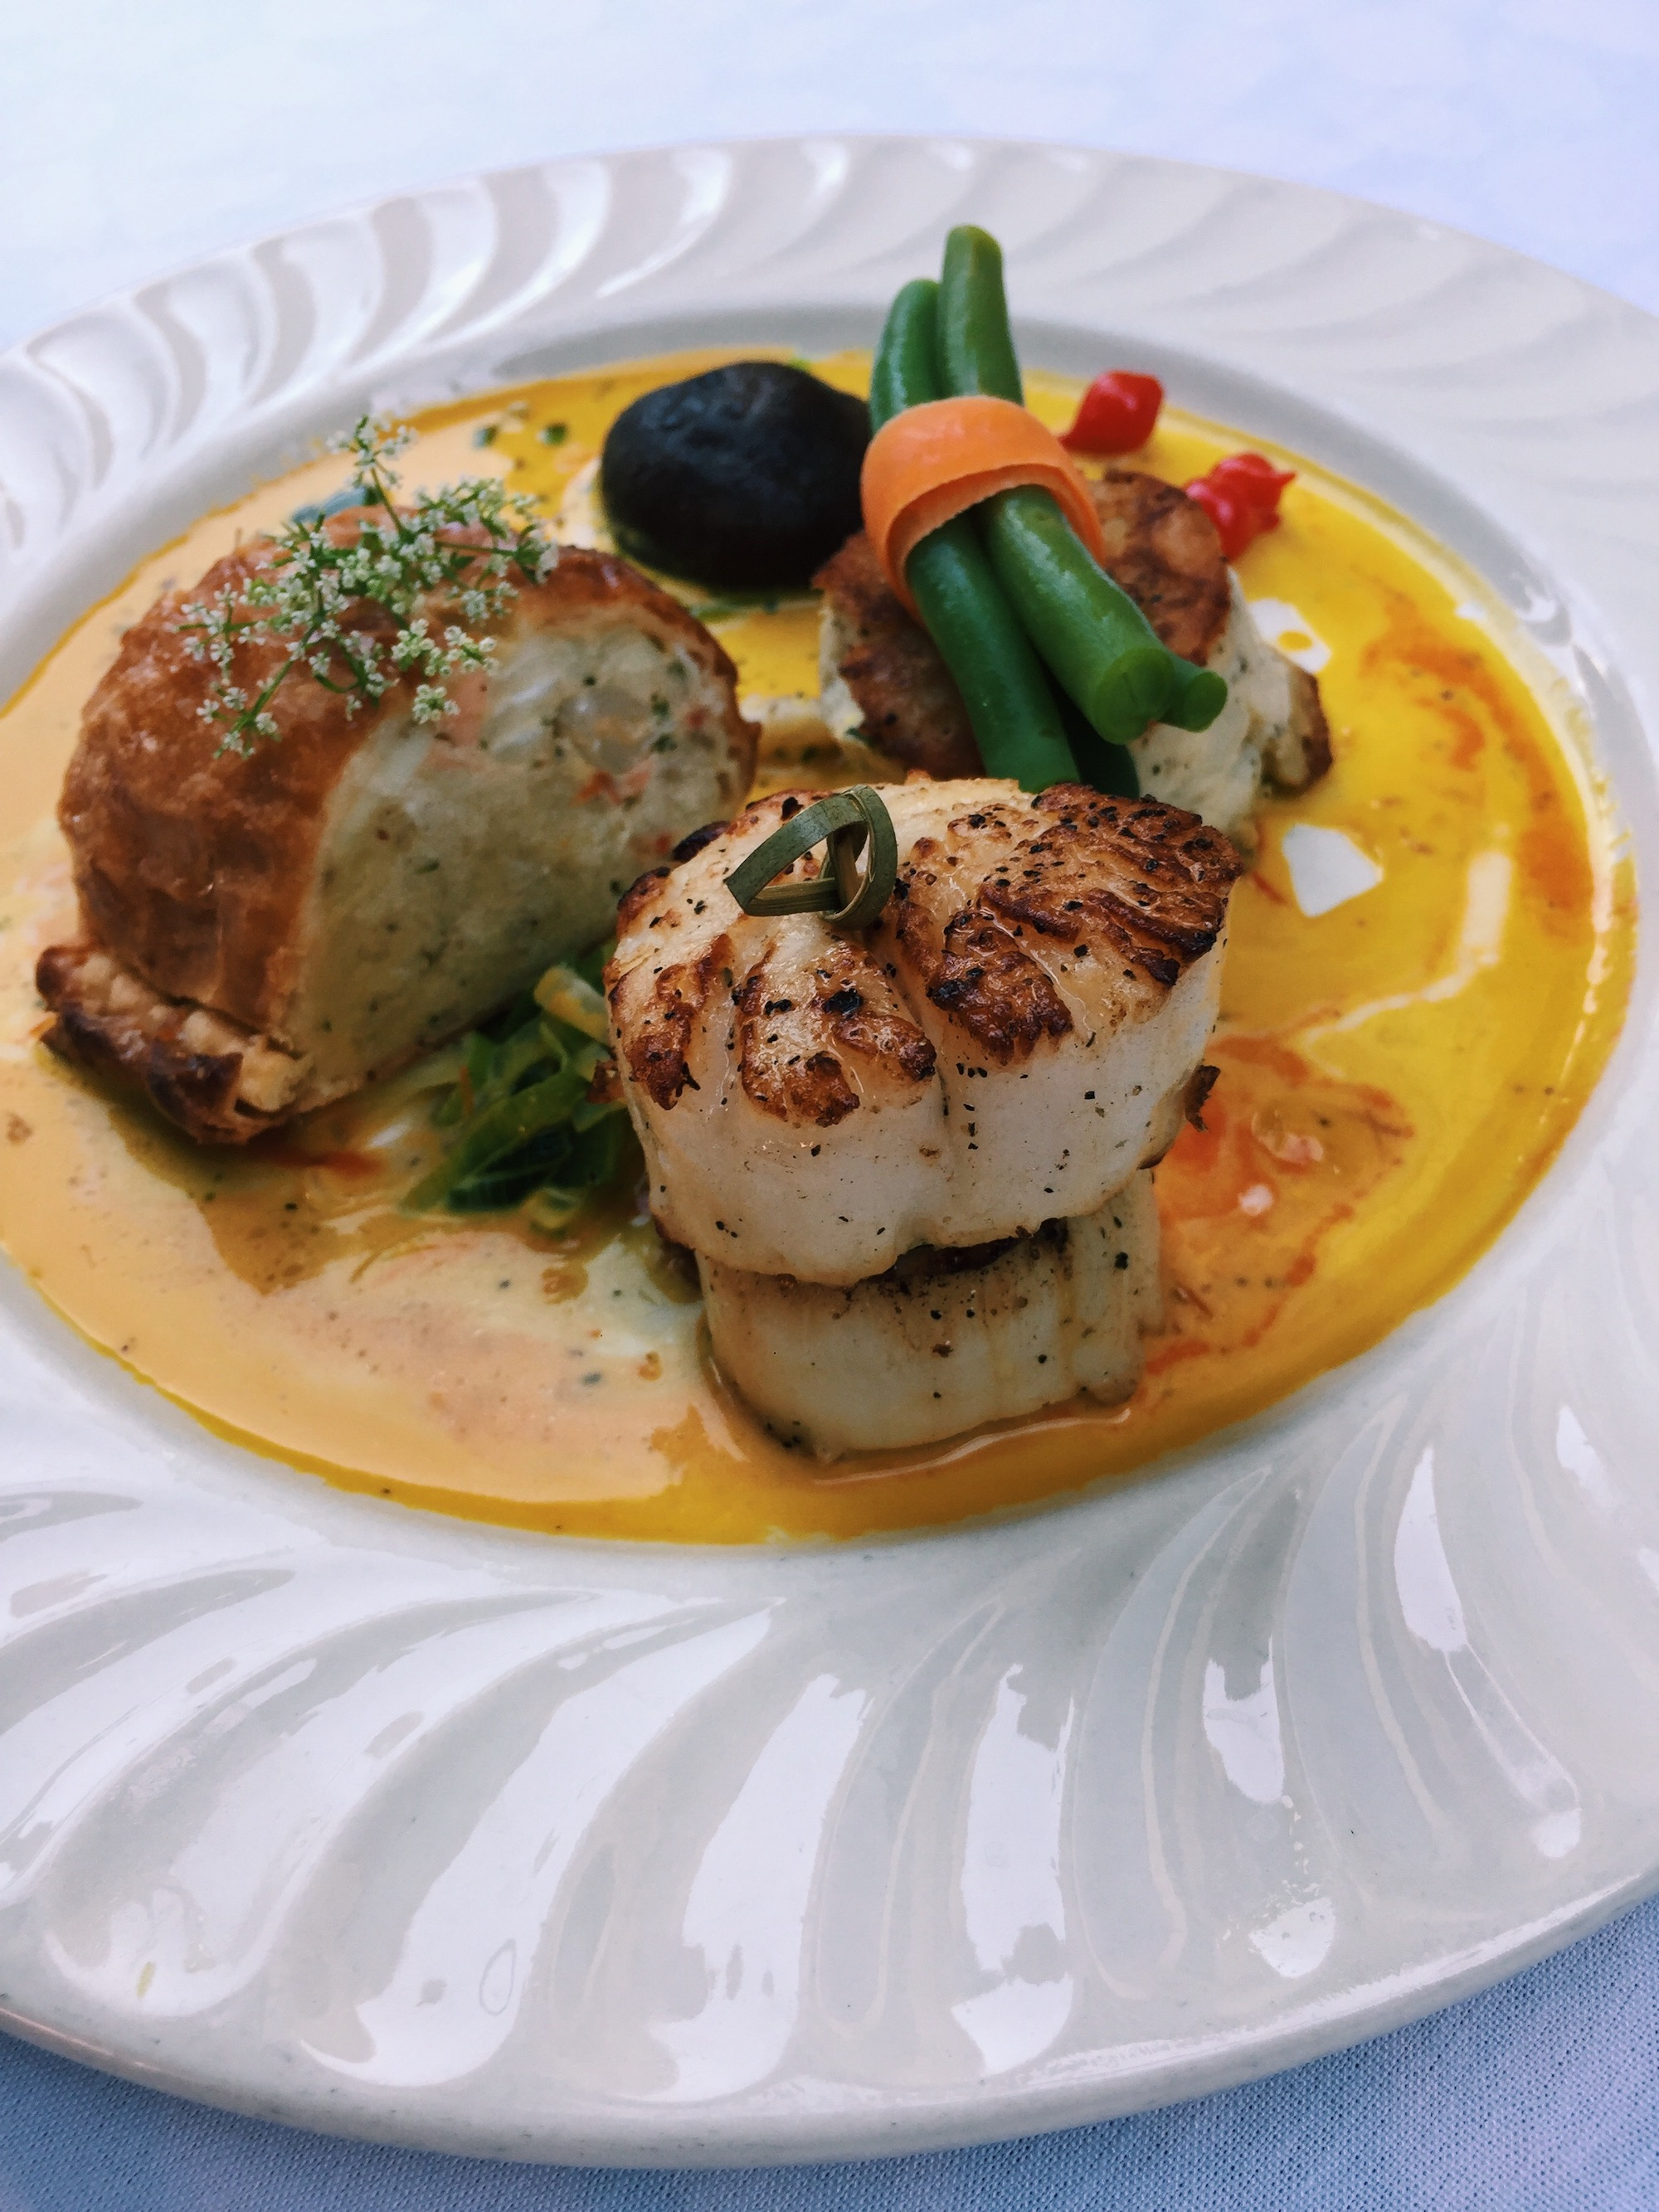 Duet of Pan Seared Scallop and Seafood Strudel